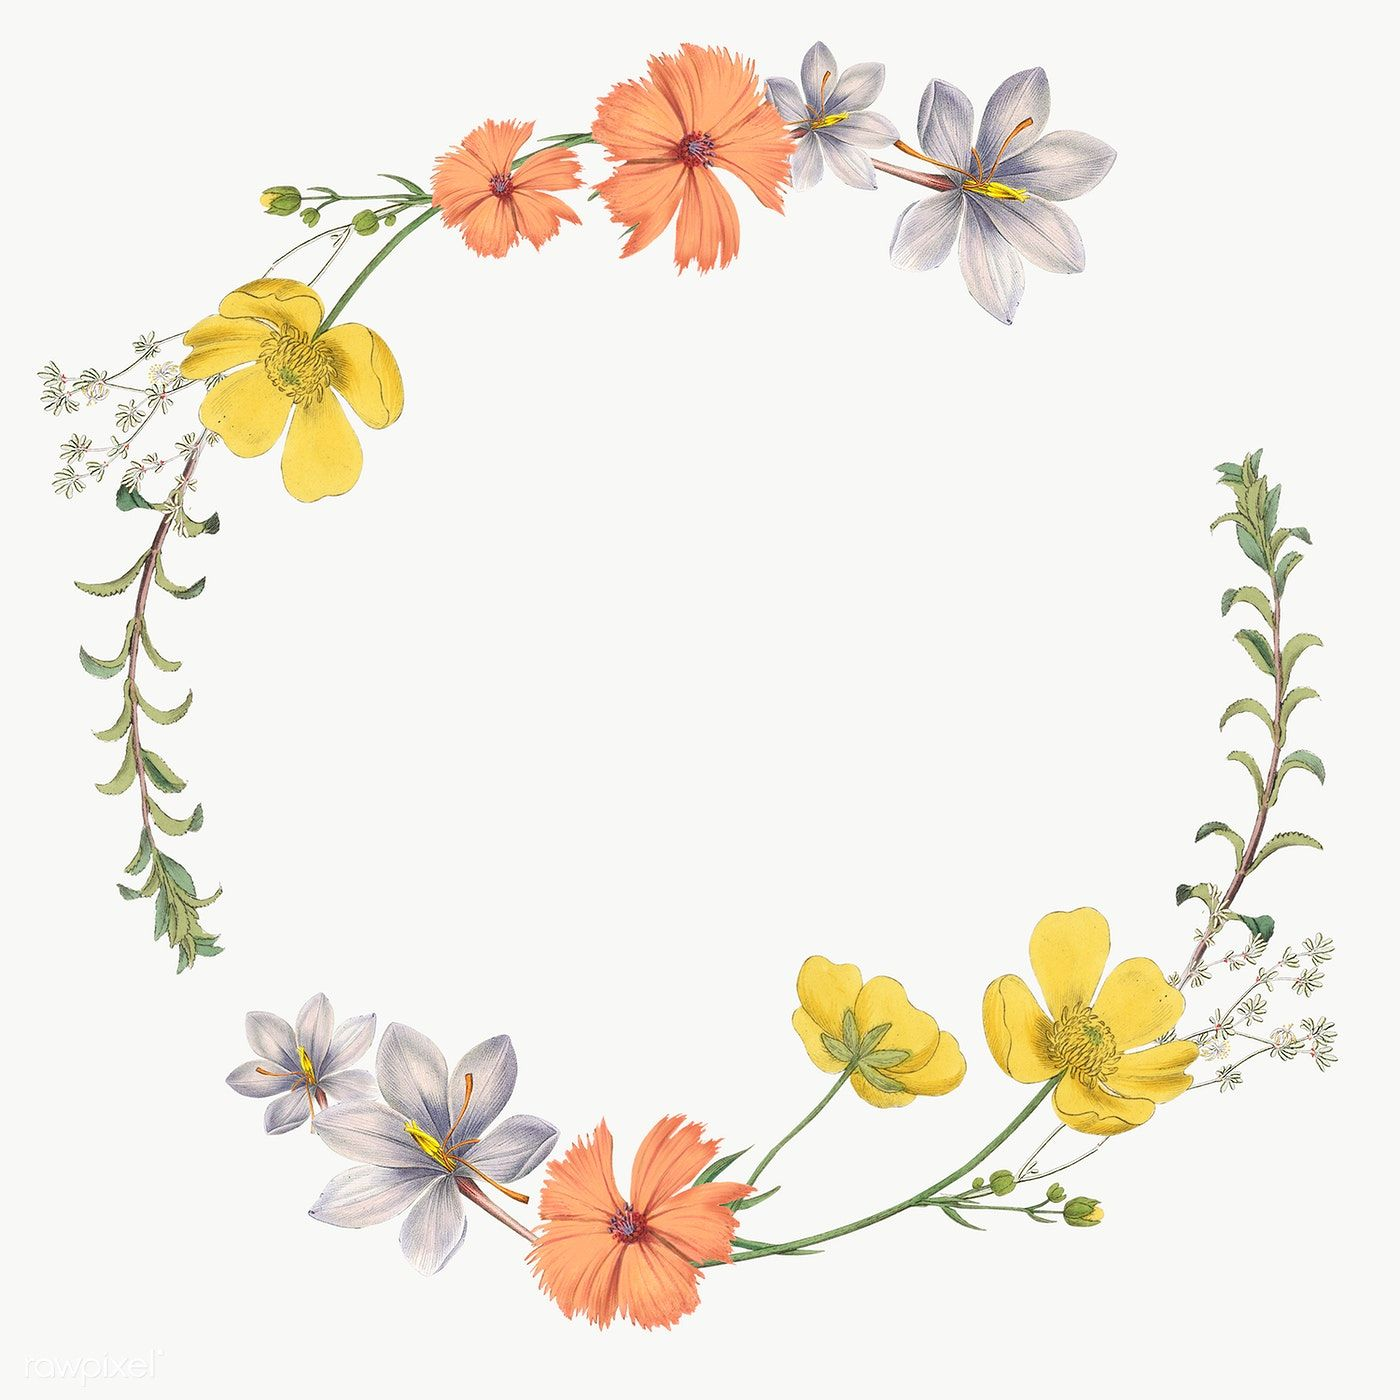 Round Mixed Flowers Frame Patterned Transparent Png Premium Image By Rawpixel Com Kappy Kappy Flower Illustration Flower Drawing Painted Floral Wreath